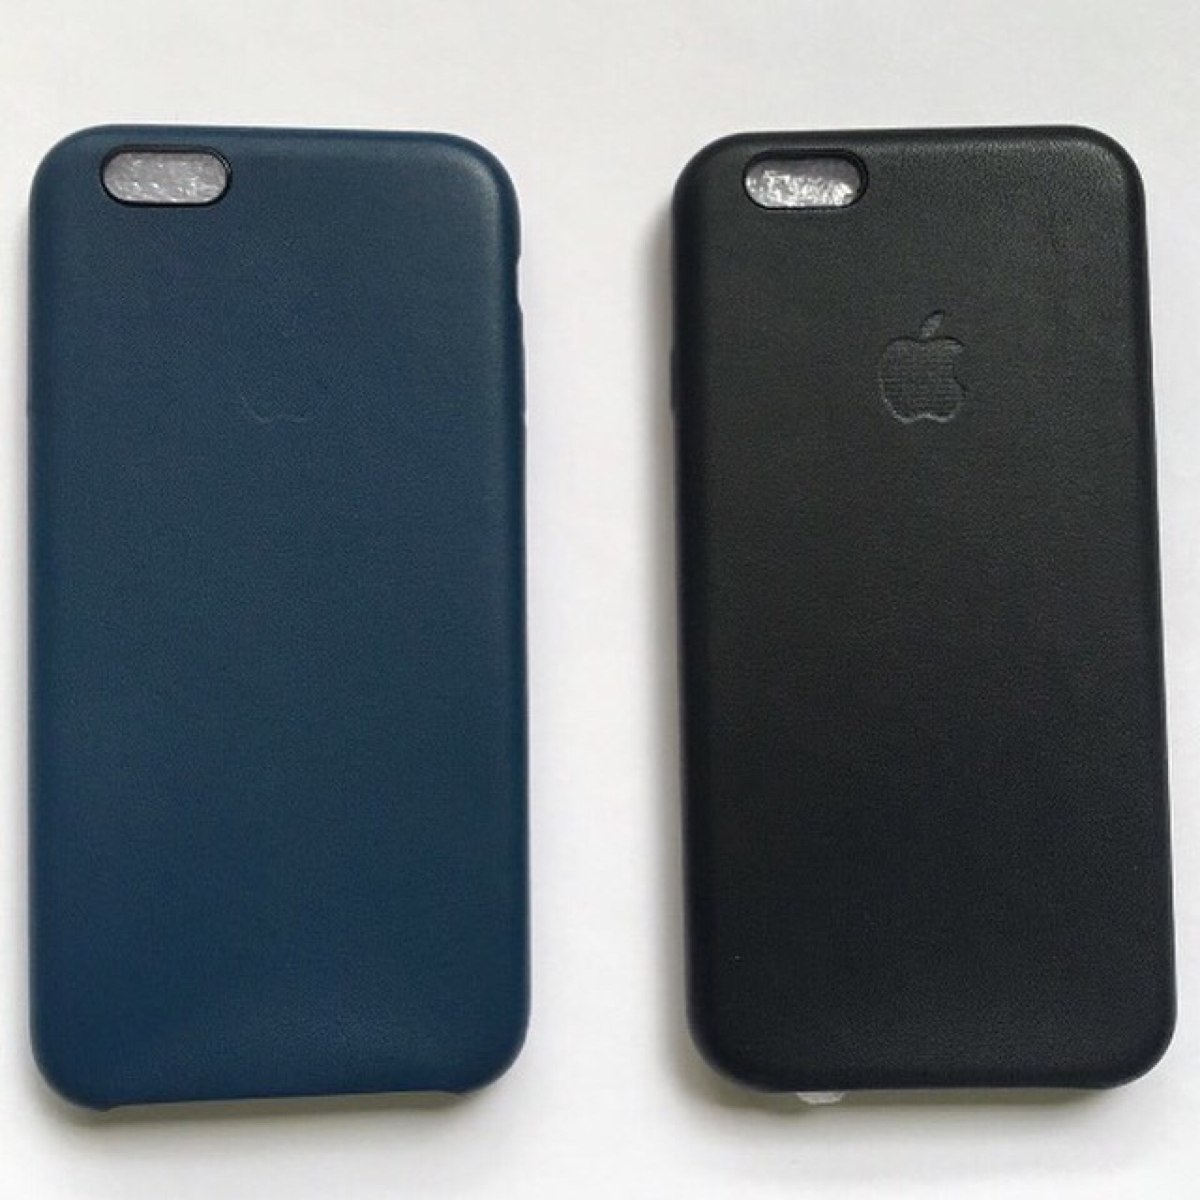 carcasa iphone 6s plus silicona